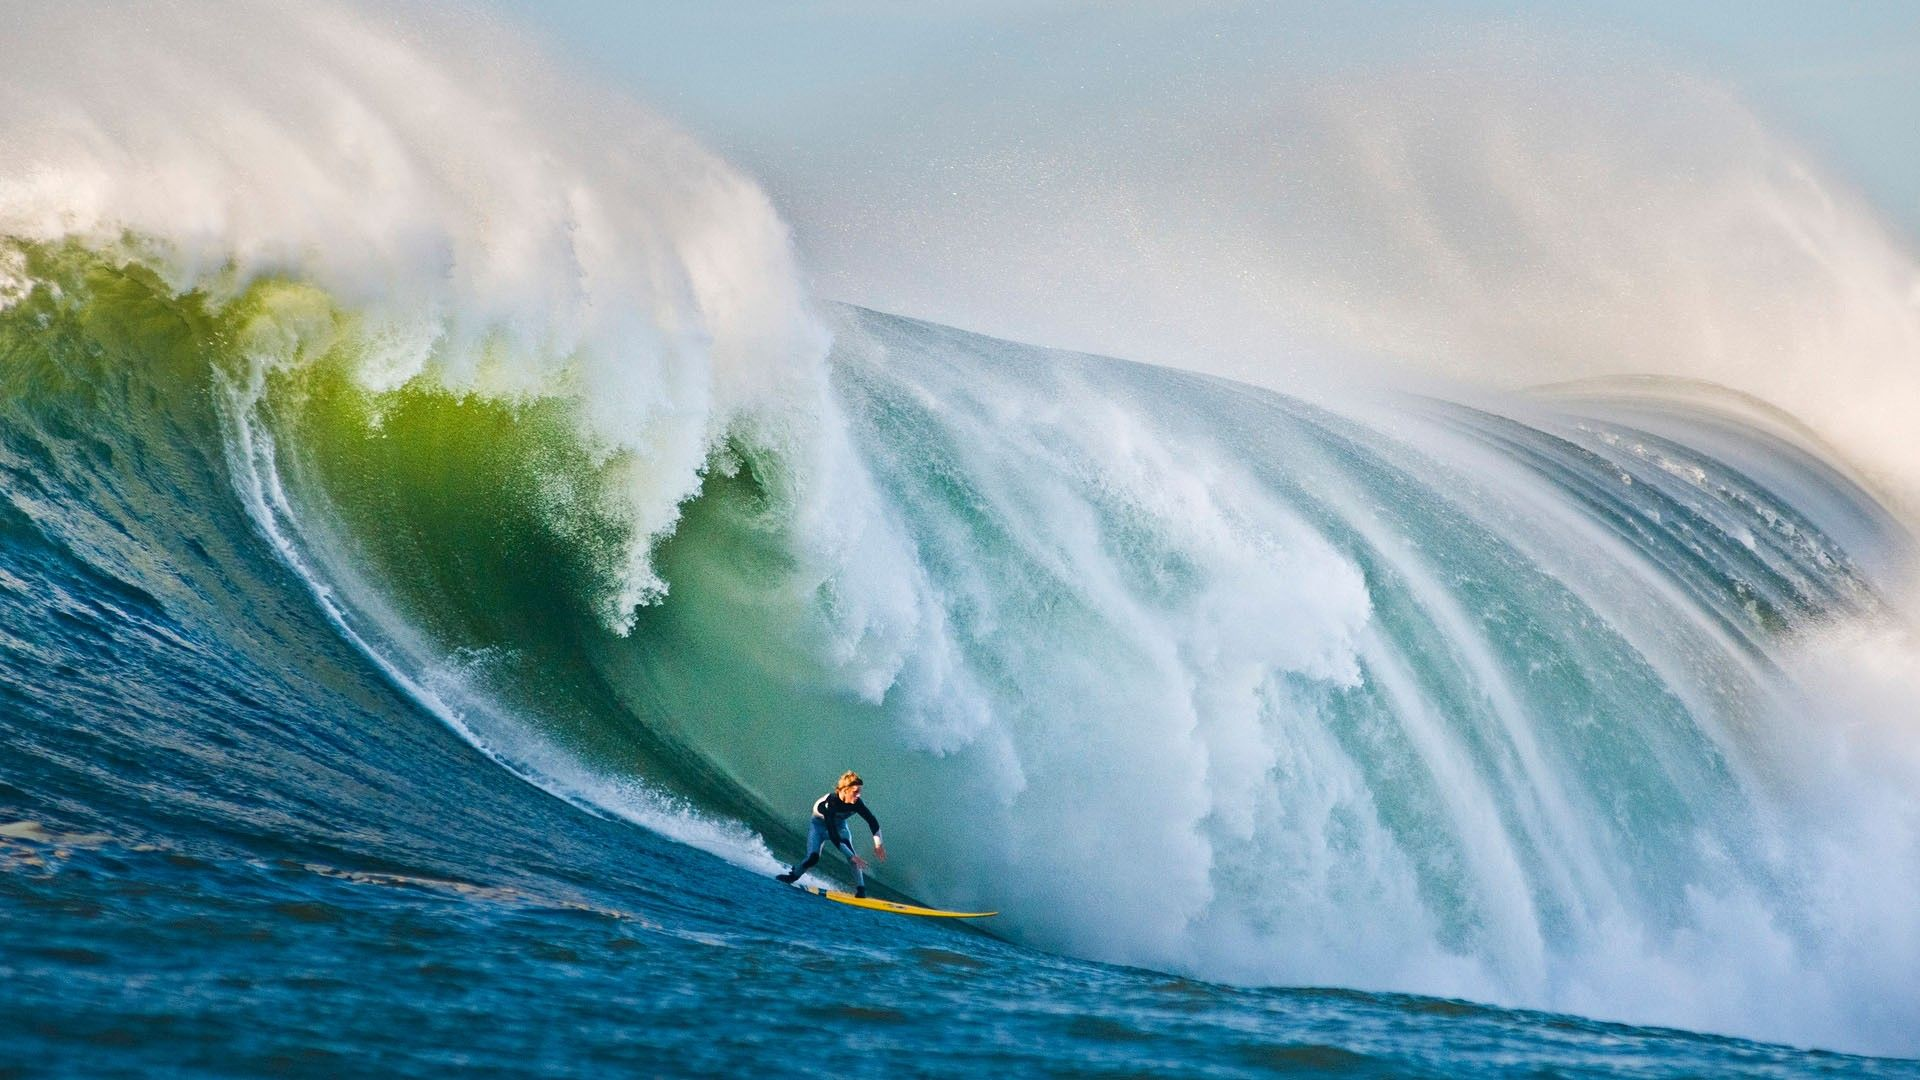 Big Wave Surfing Free Download Picture Surfing Pictures Big